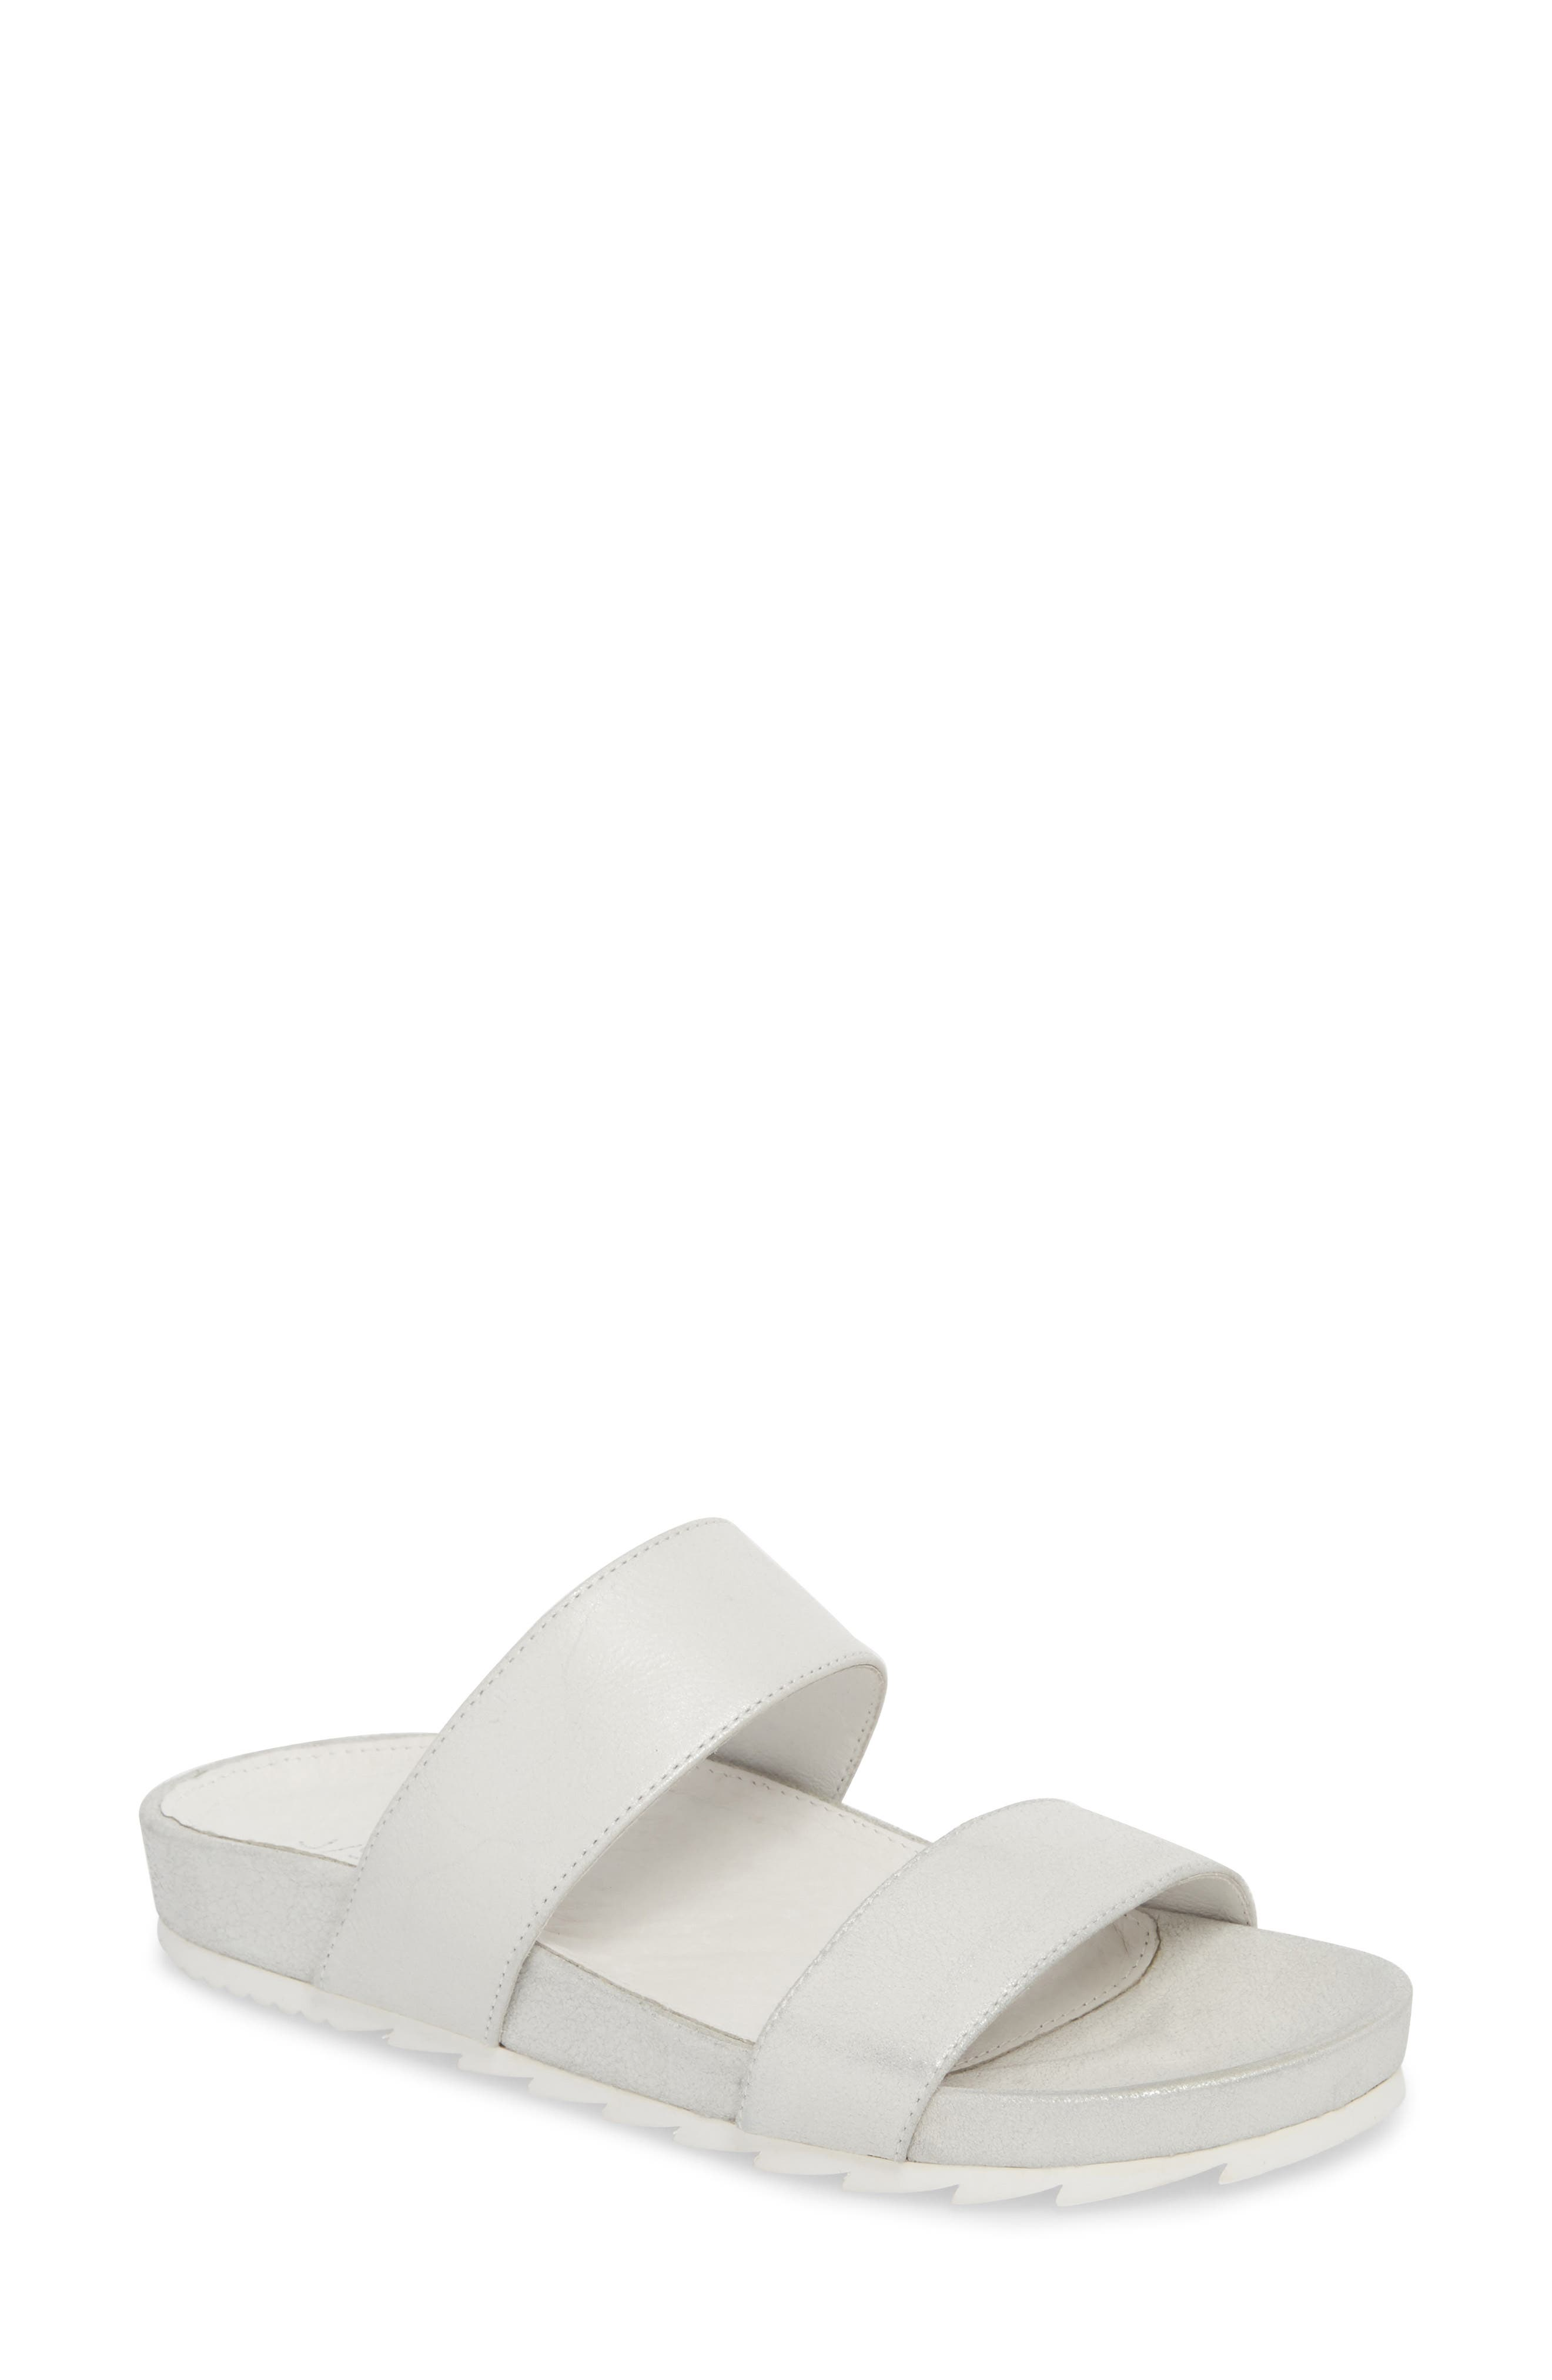 Edie Sandal,                         Main,                         color, Silver Fabric